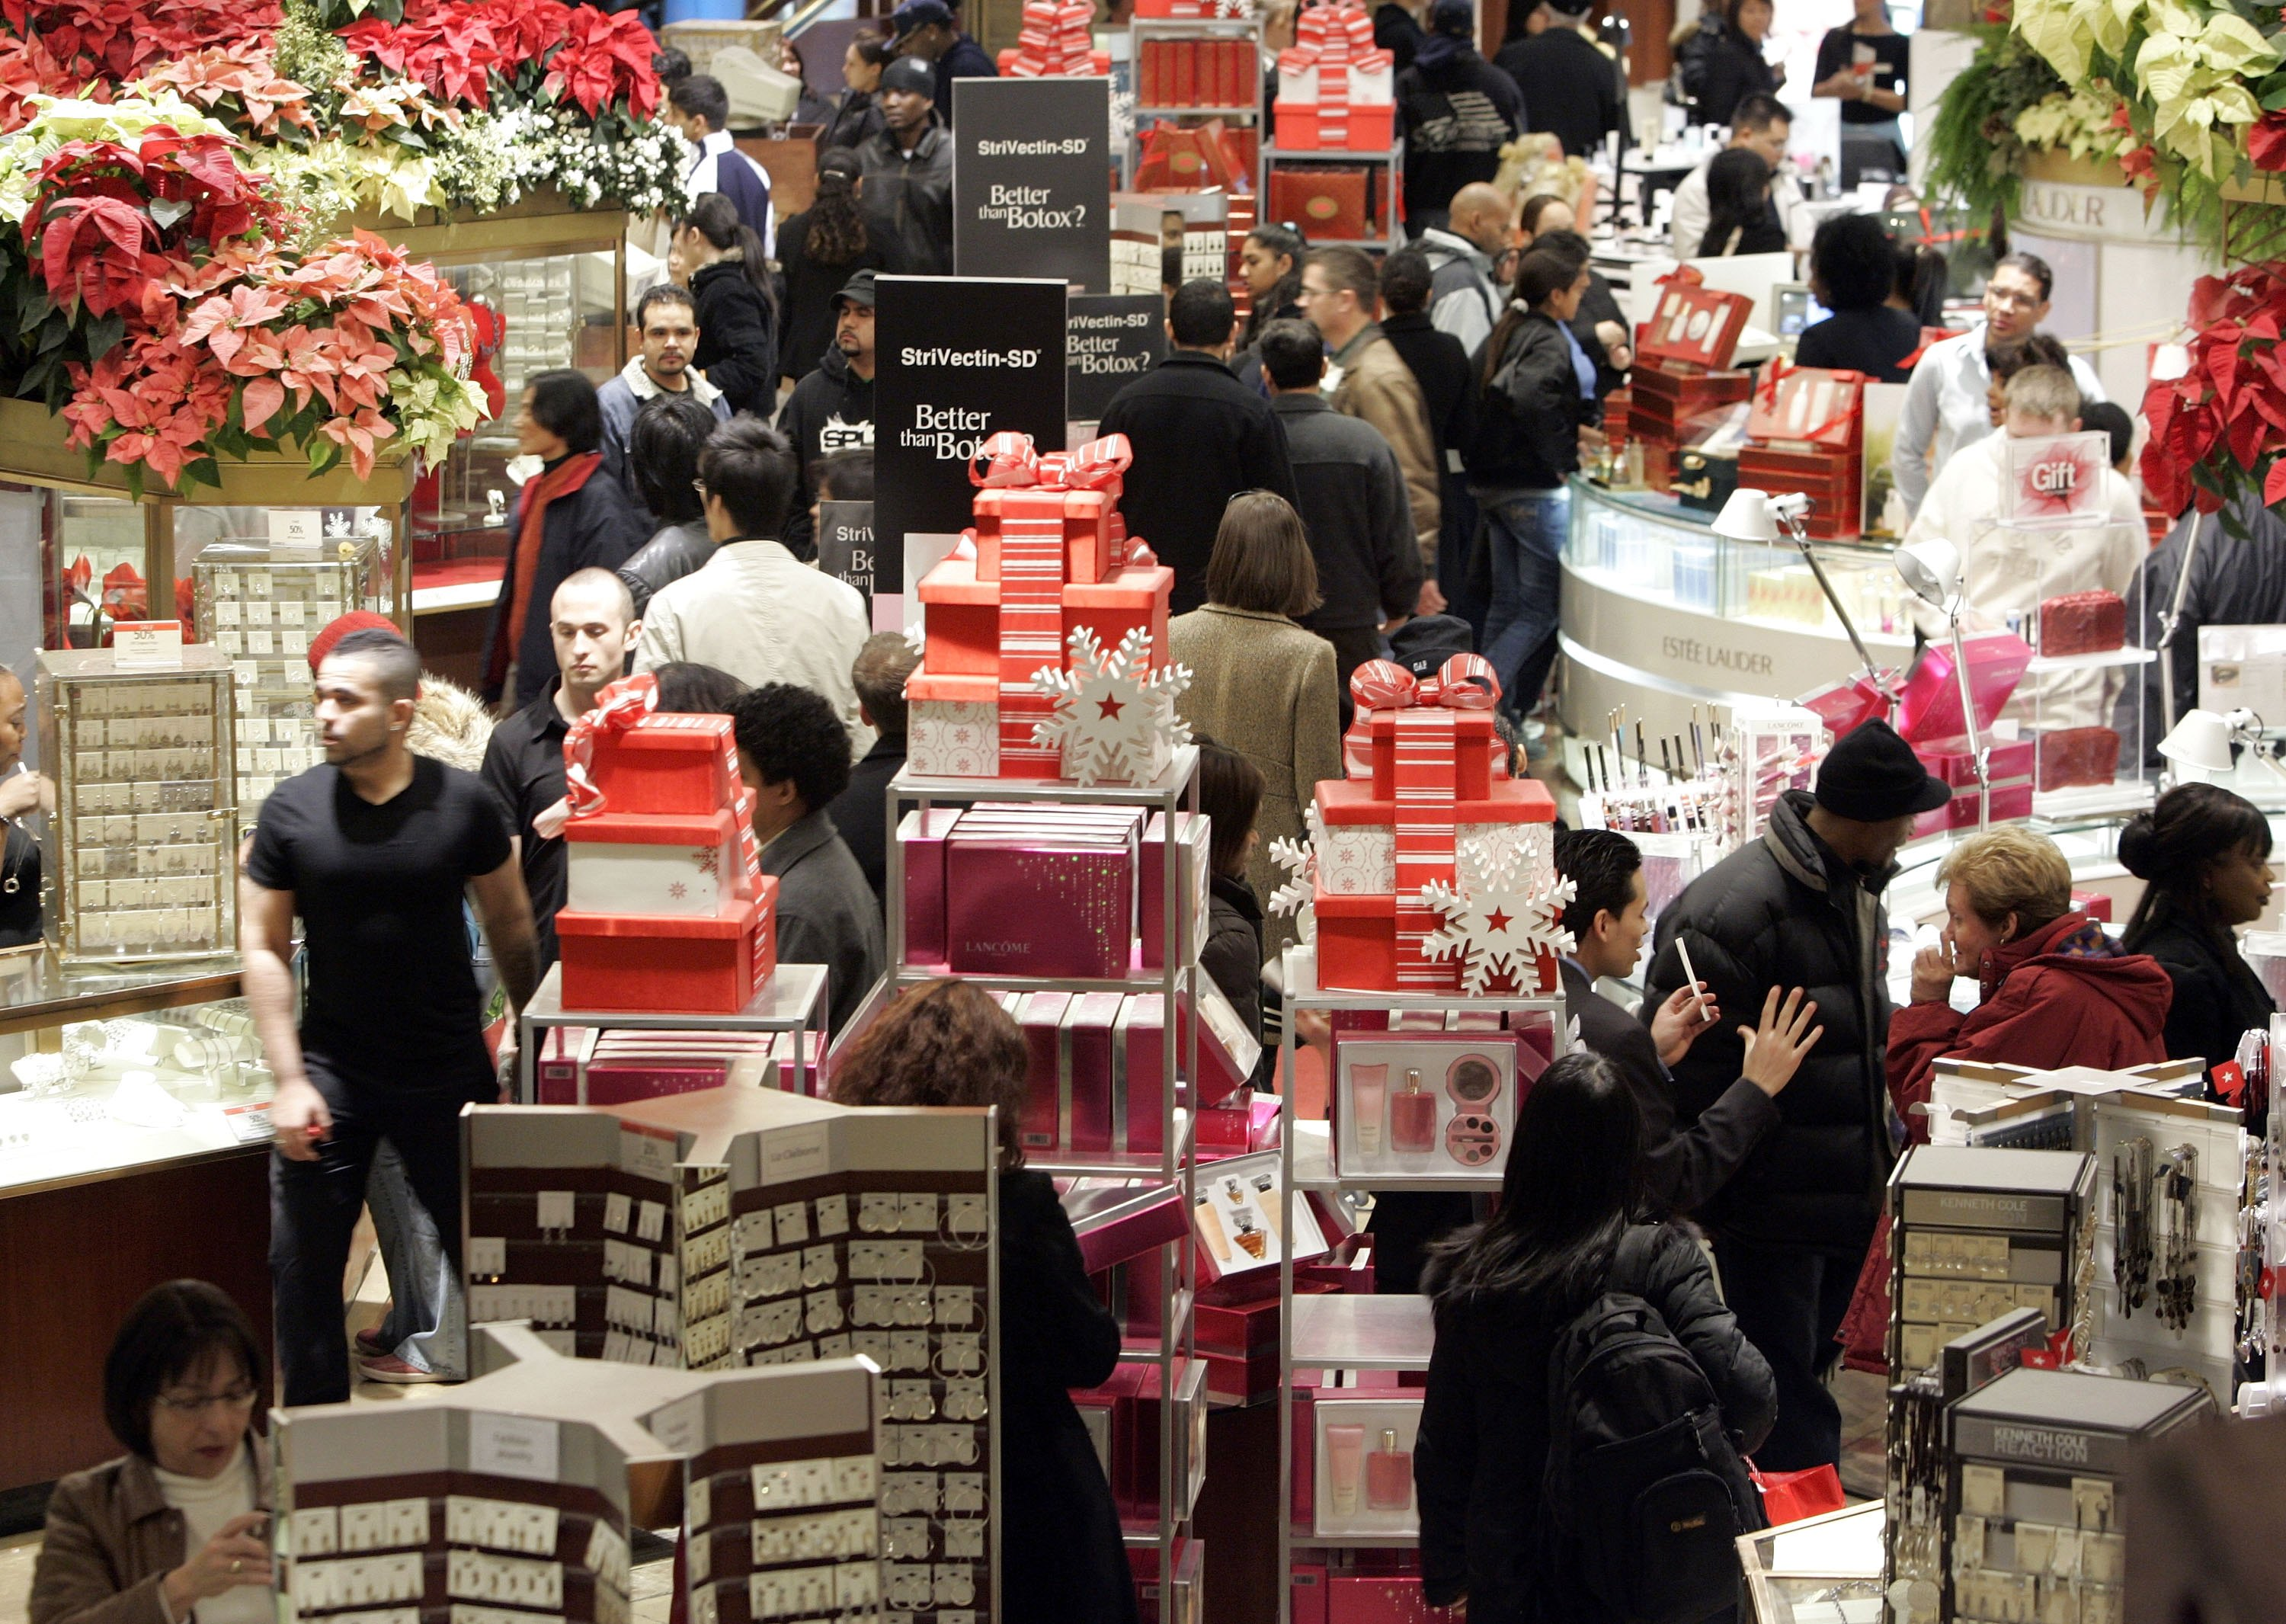 Last minute shoppers peruse merchandise at Macy's December 24, 2006 in New York City. (Photo by Stephen Chernin/Getty Images)